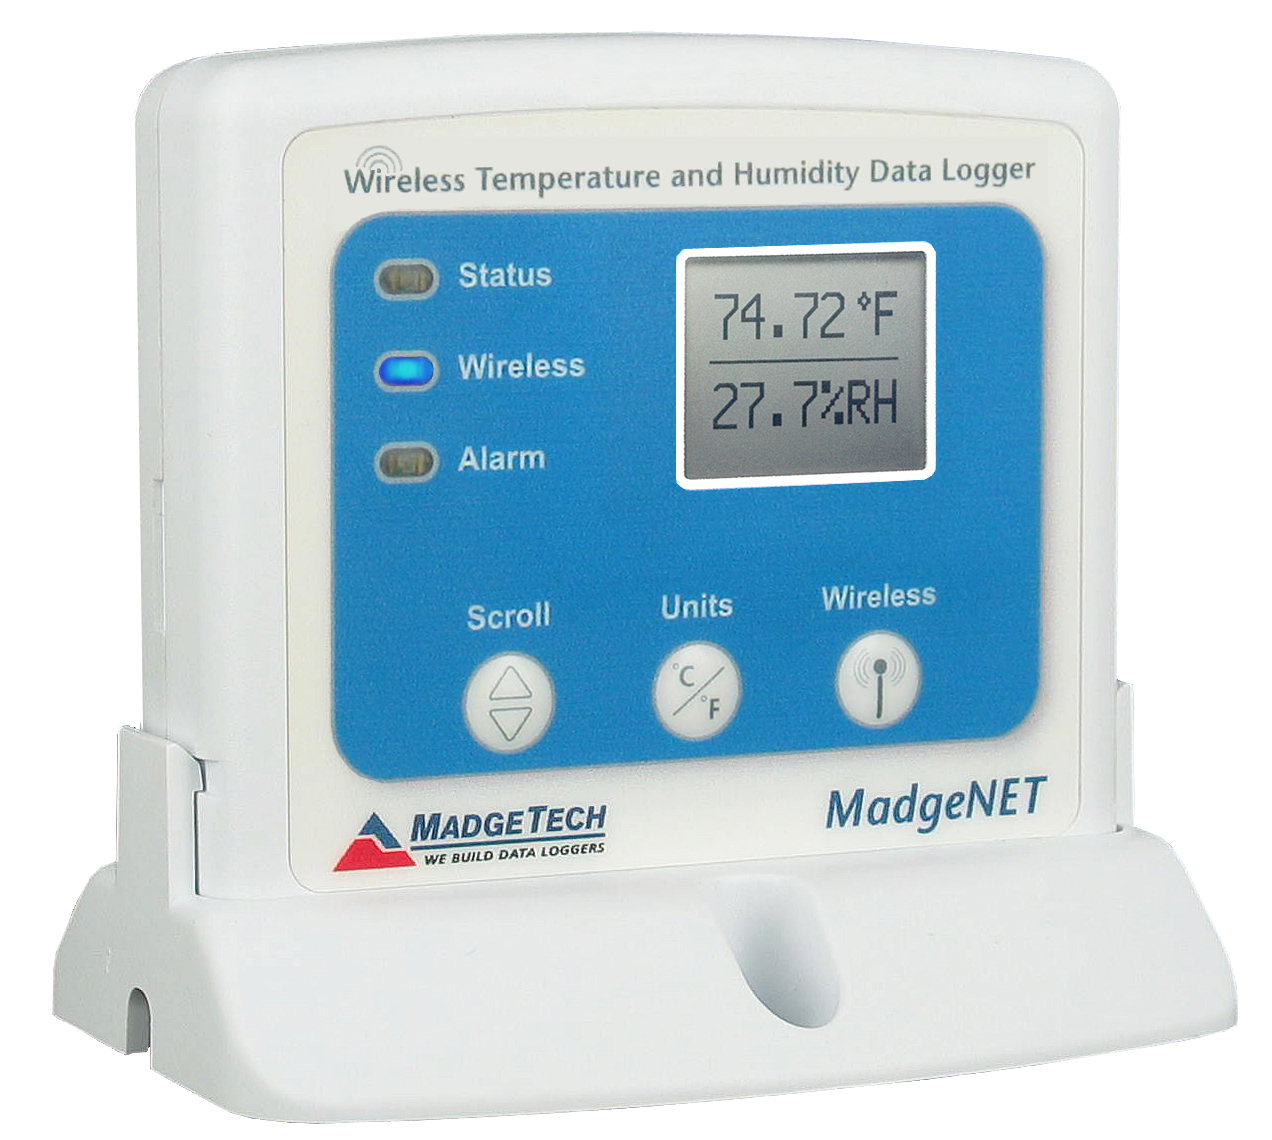 MATREC141: Wireless Temperature and Humidity Data Logger